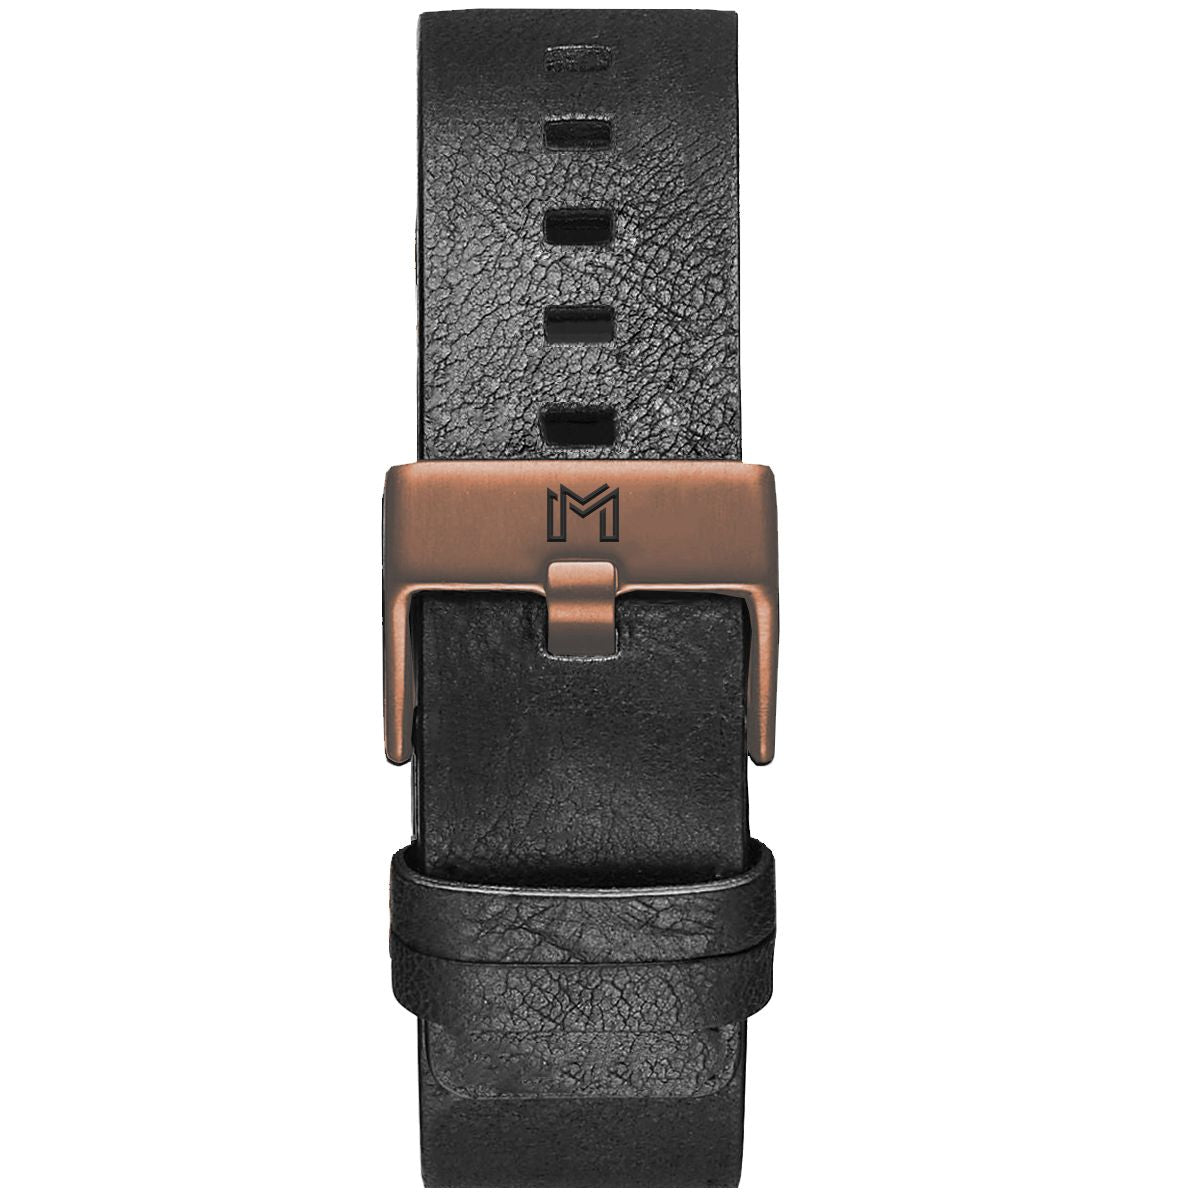 Titanium Strap / Black Leather - Rose Gold Buckle - minimalistae